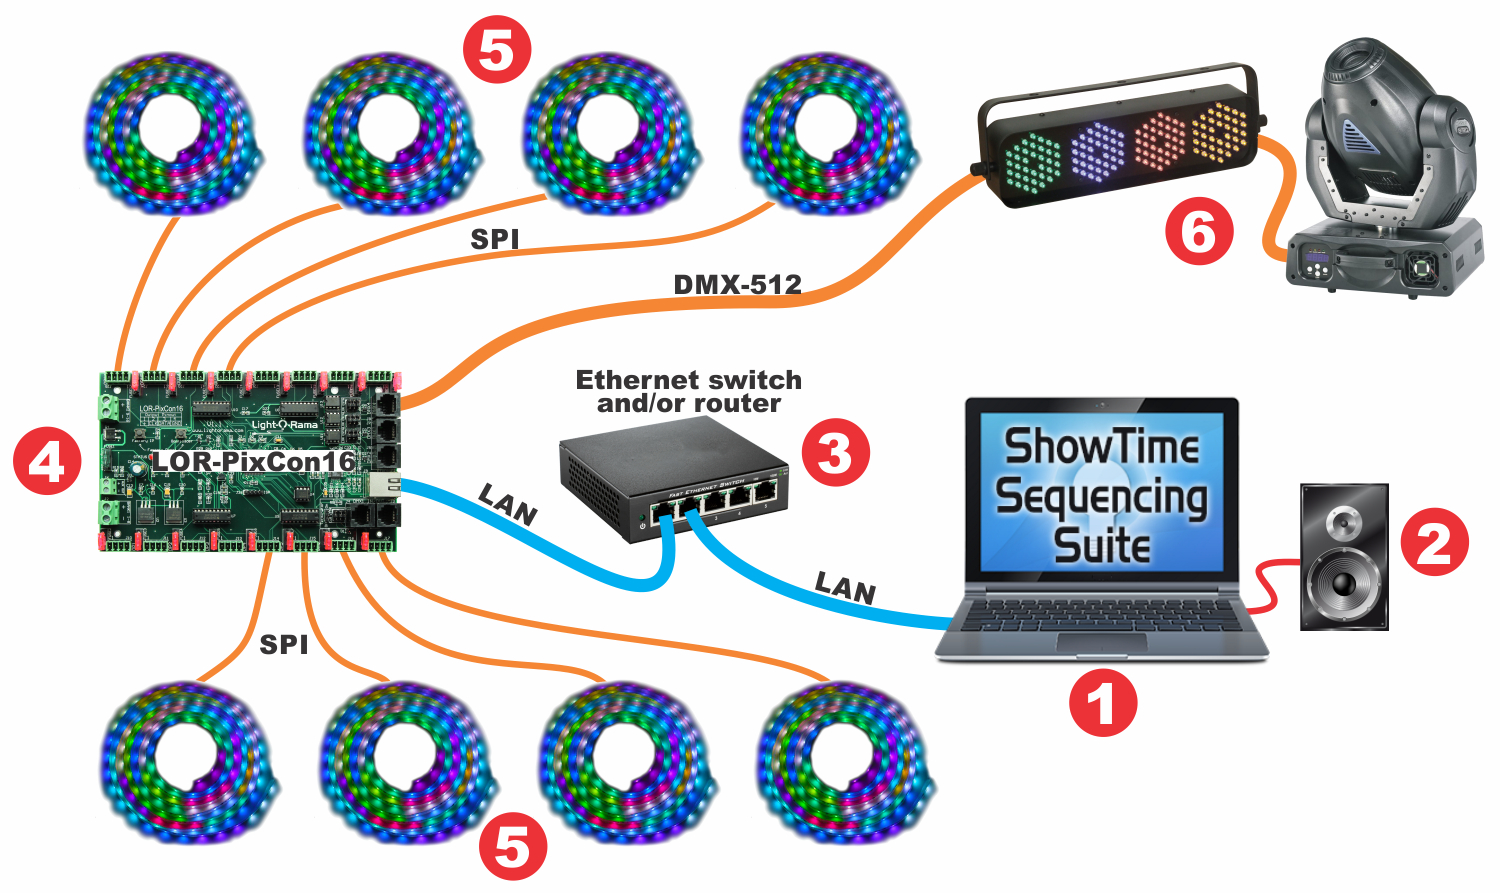 basic layout with lor pixcon16 smart pixel controller using e131 network